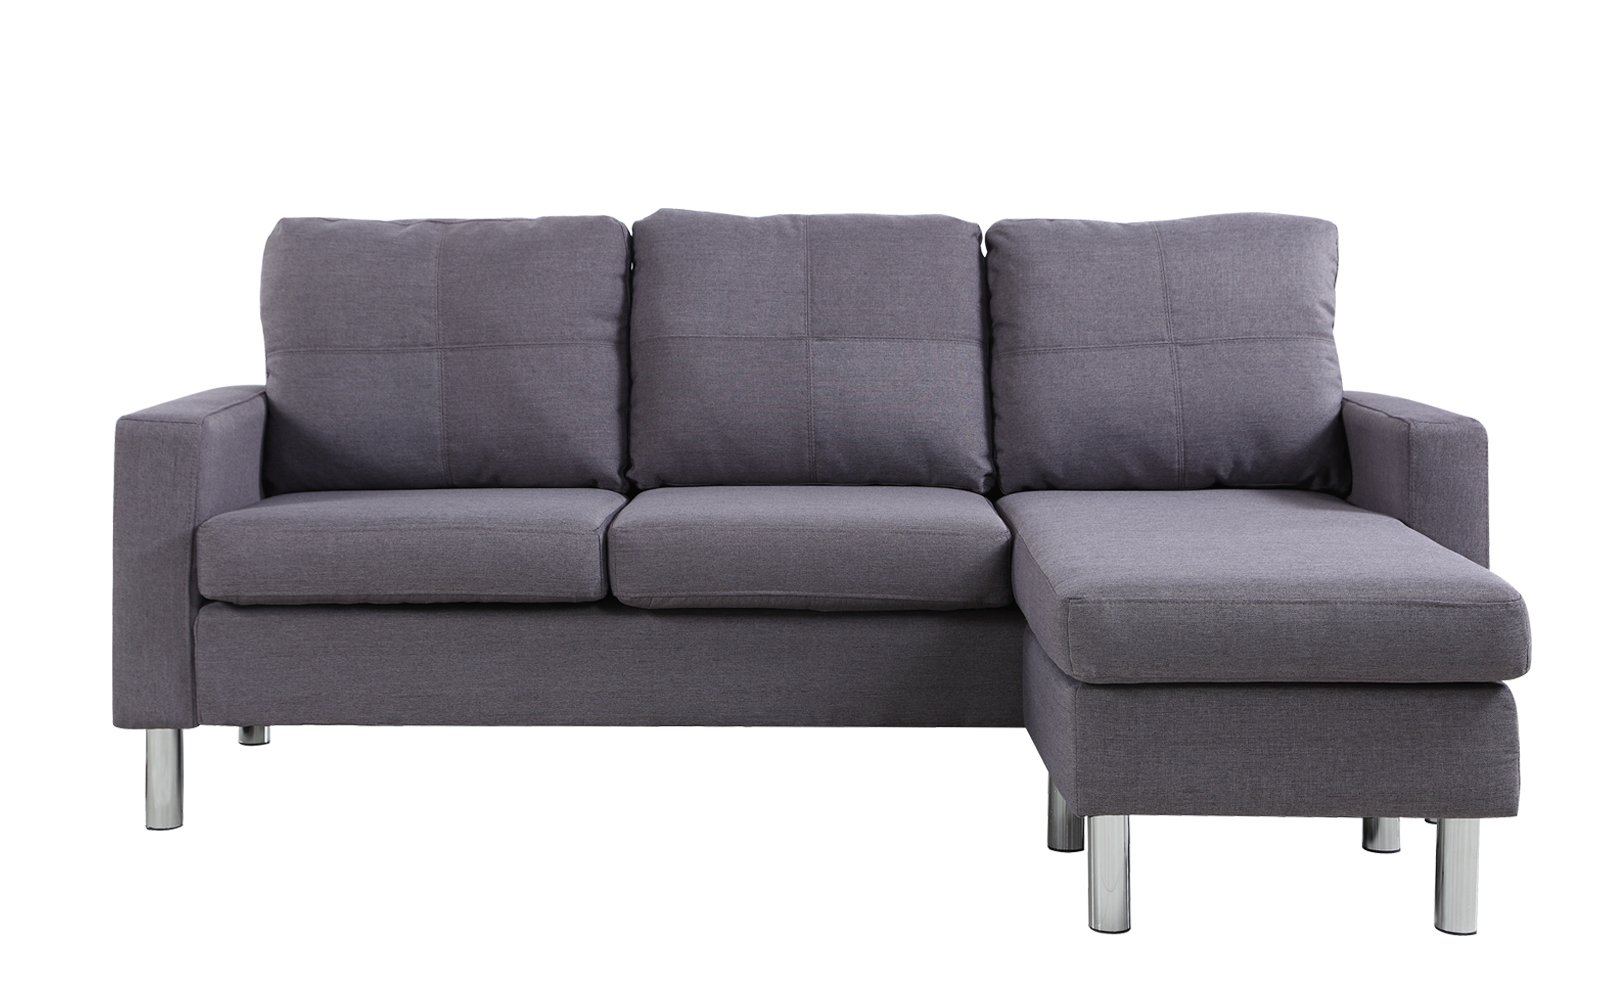 Details about Modern Small Space Reversible Linen Fabric Sectional Sofa in  Color Light Grey